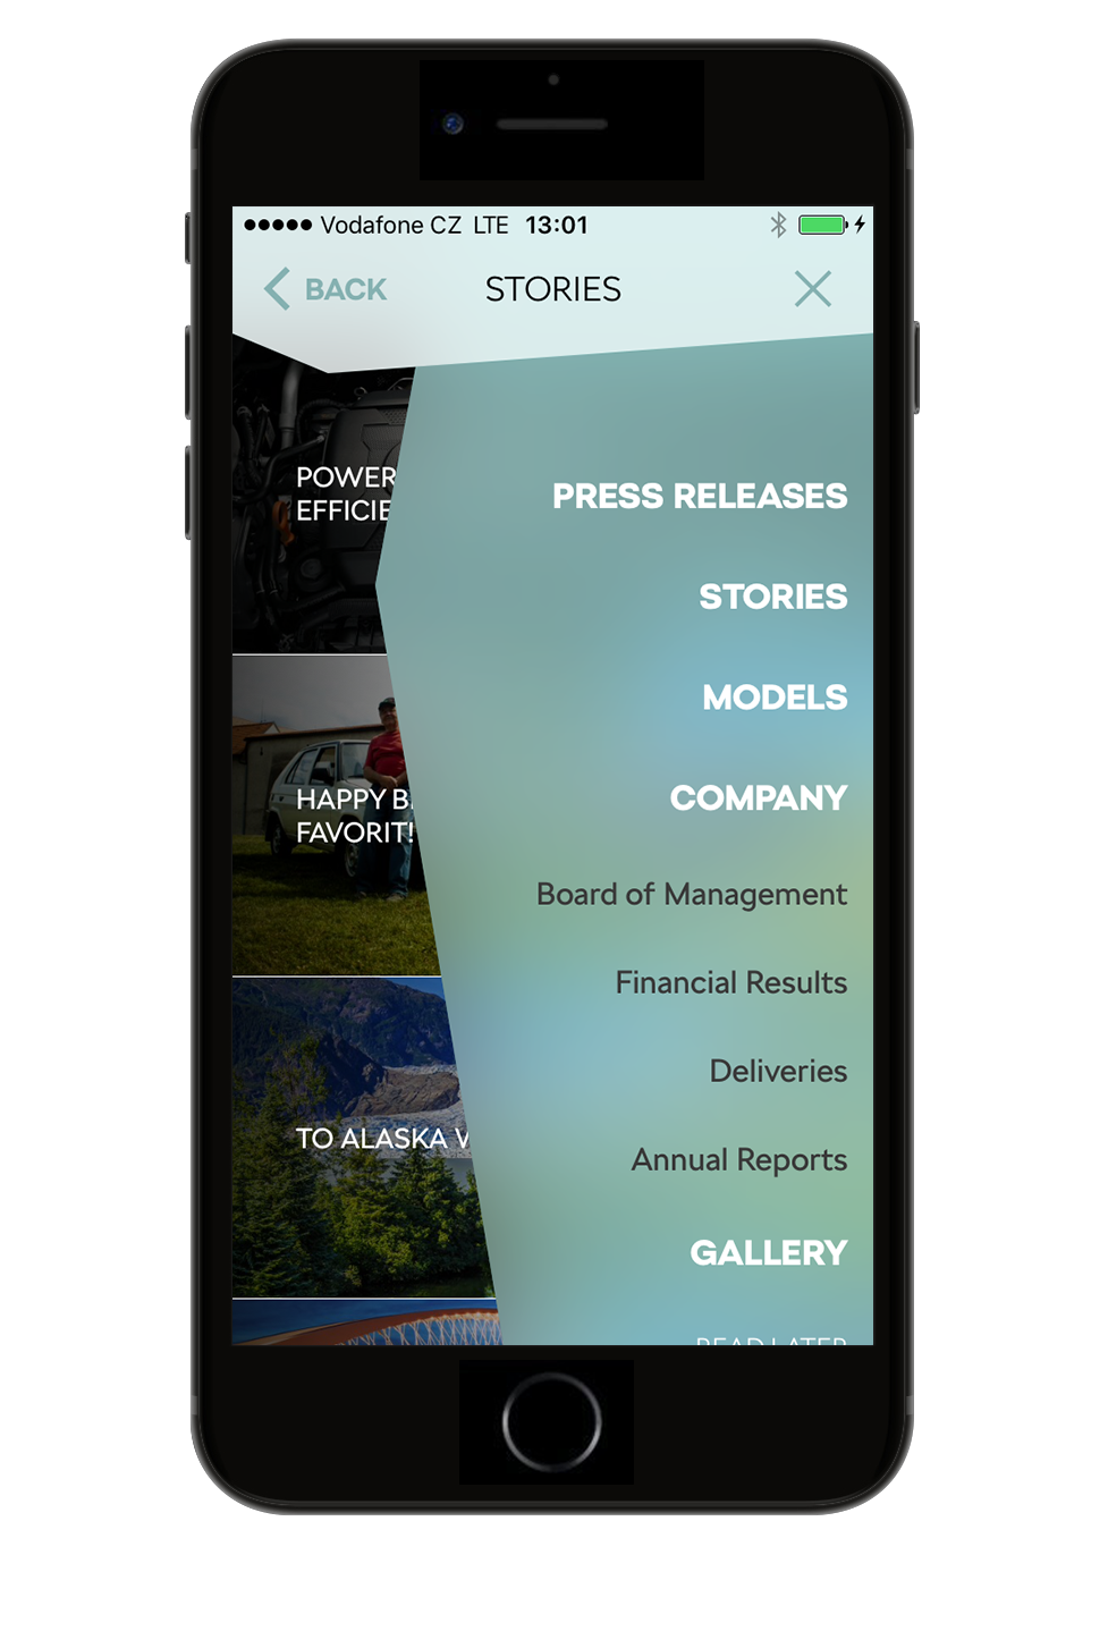 Modern and intuitive: ŠKODA Media Services app featuring a new design and additional functions